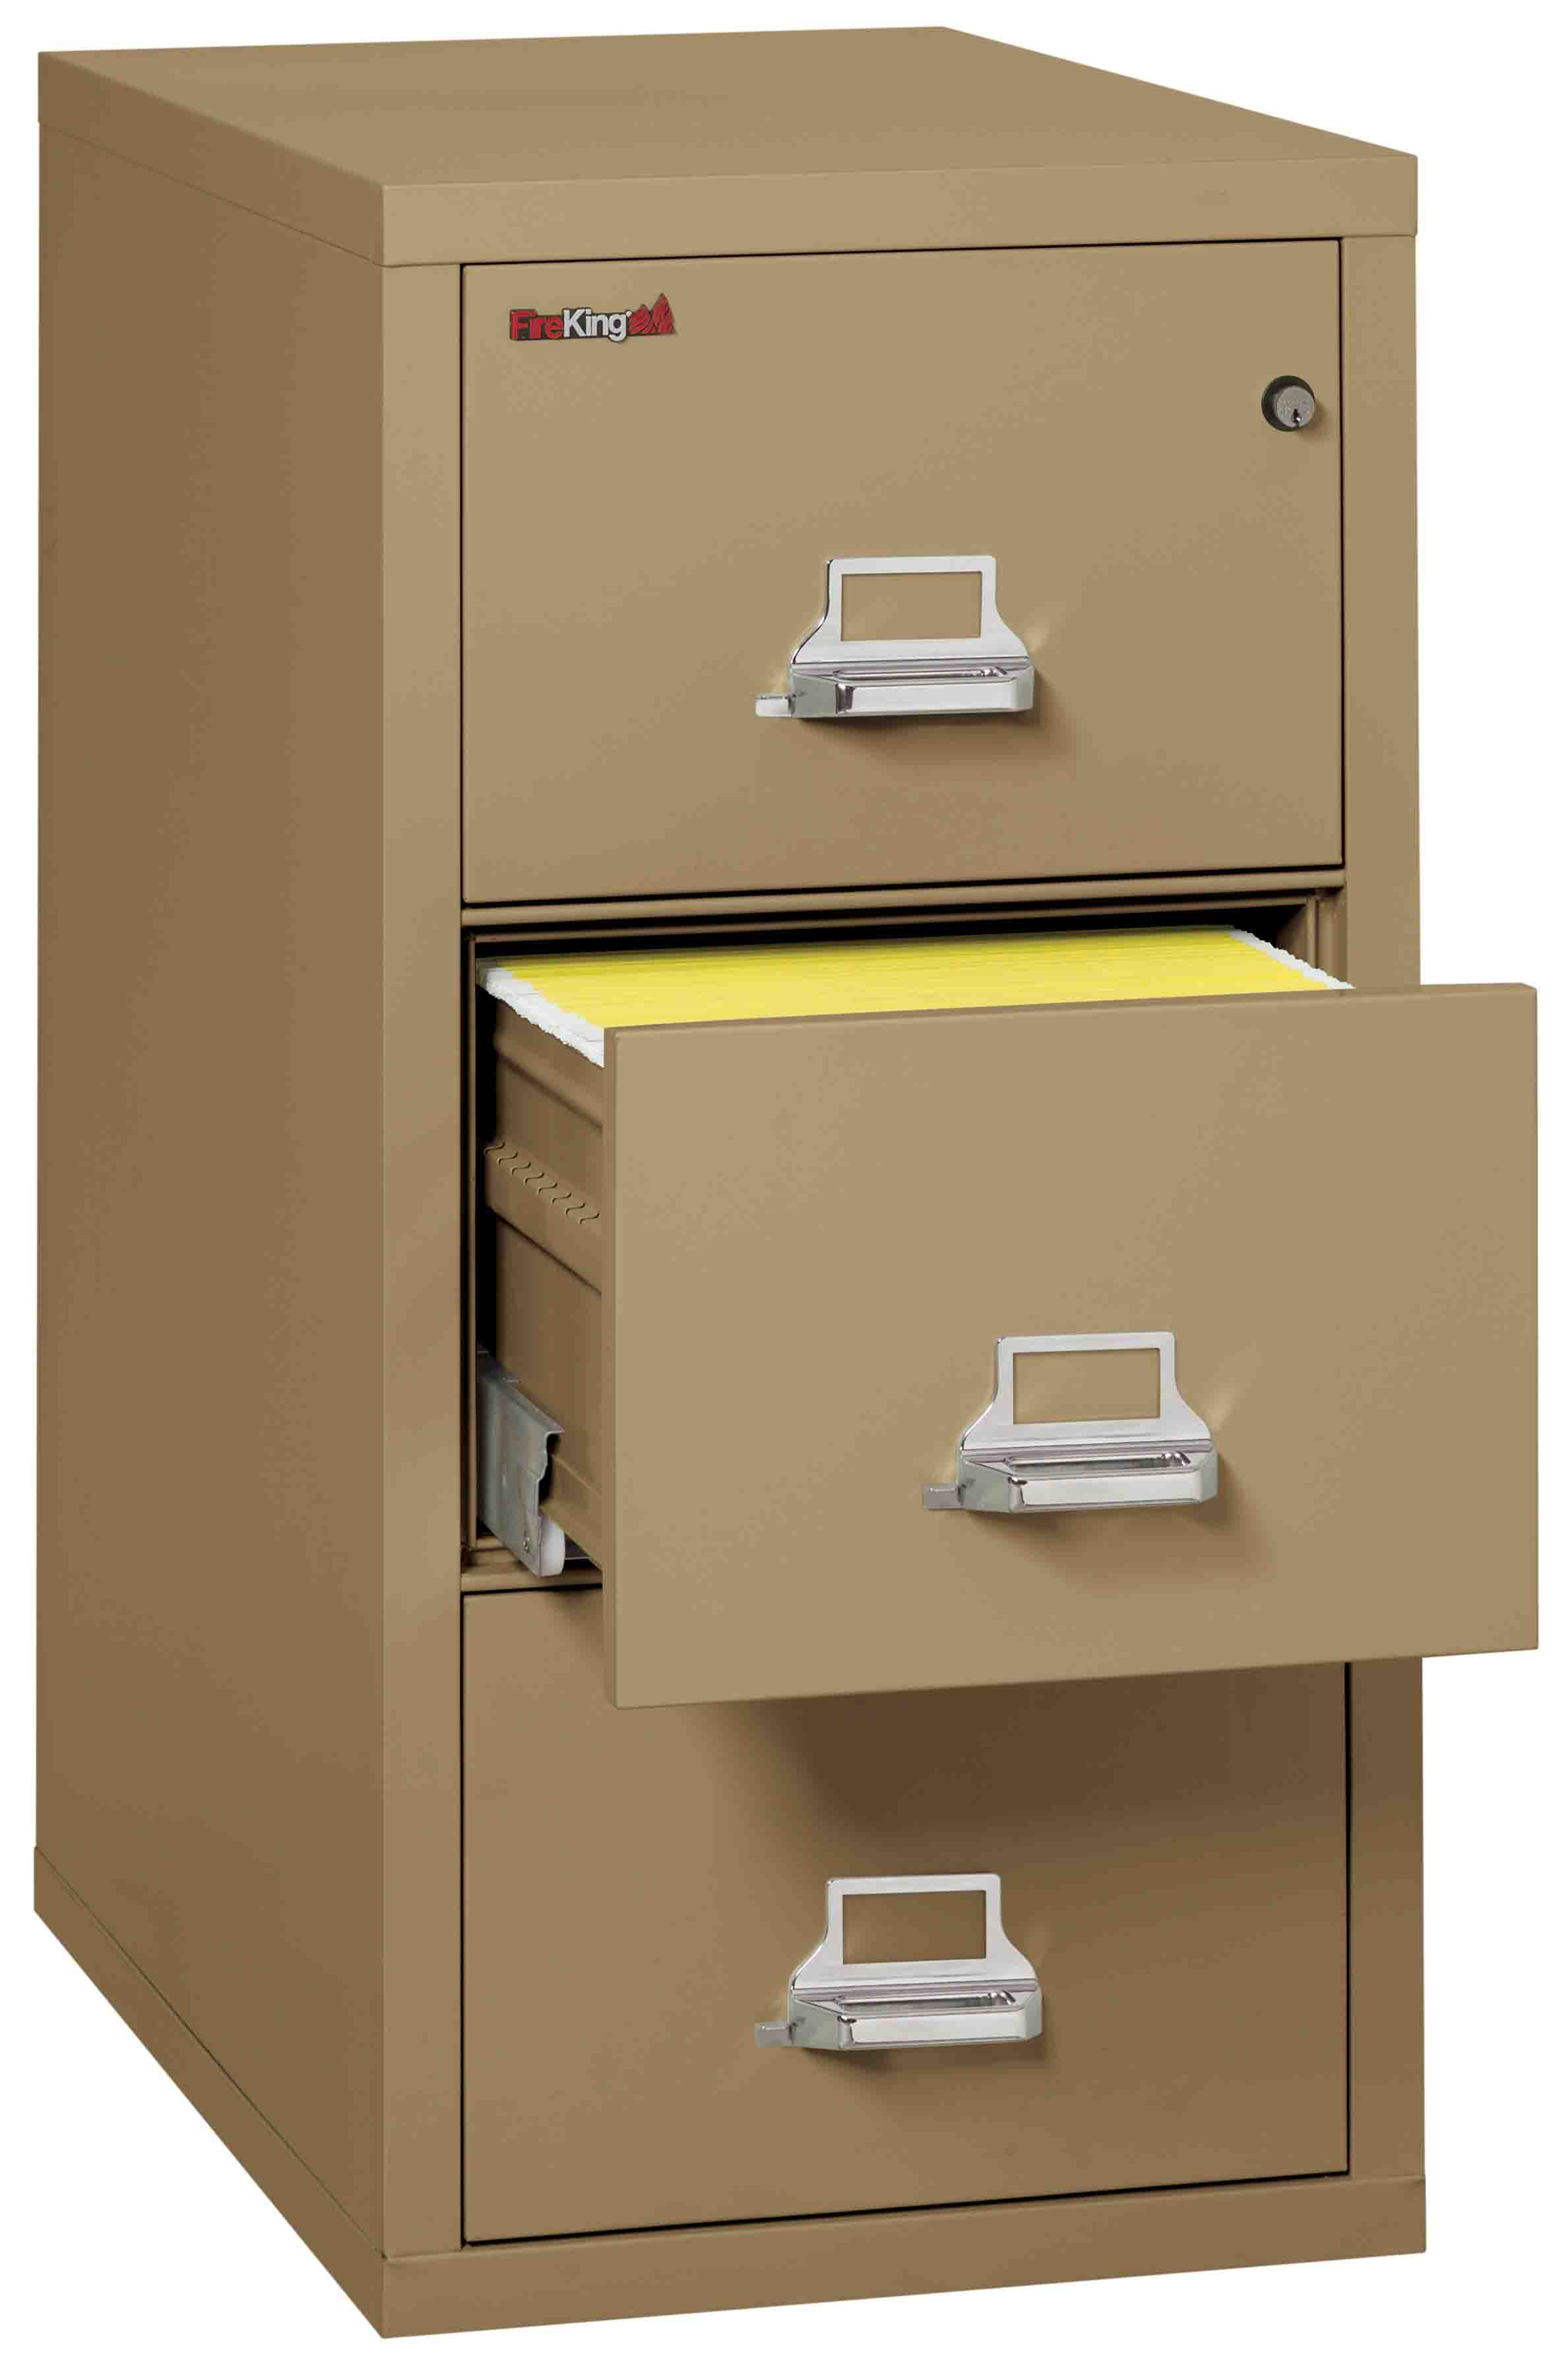 Fire King 3 2131 C Vertical Fireproof File Cabinets Drawer 1 Hour Rating